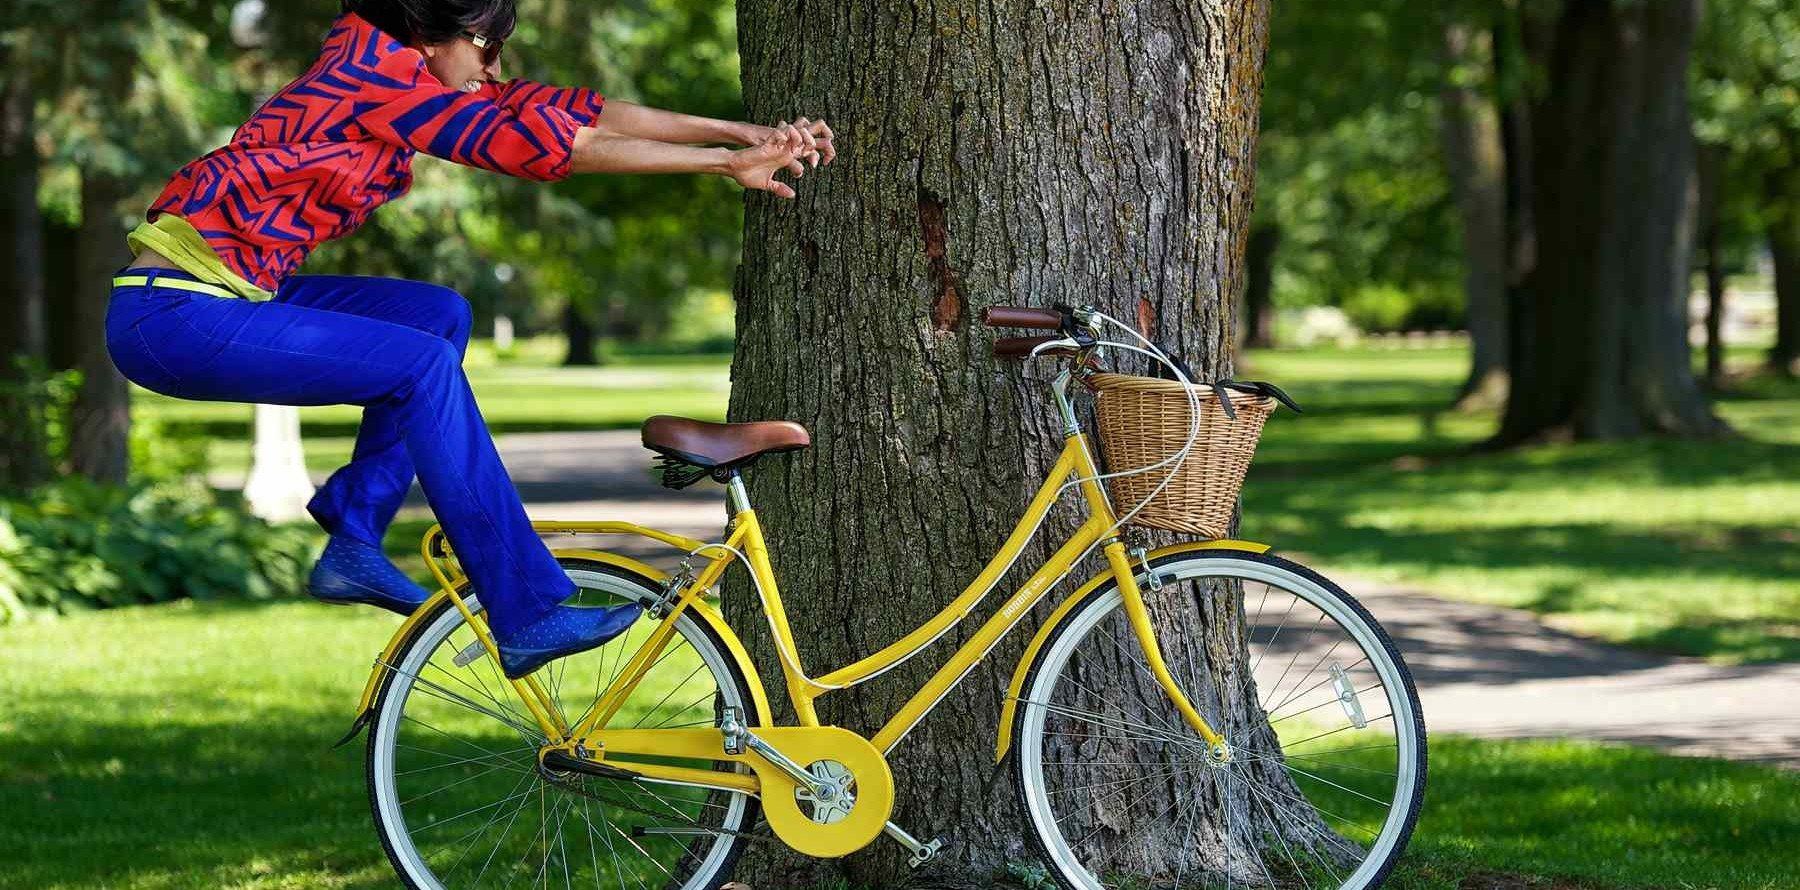 WEB EXCLUSIVE: Talking cycle style with the Velo Vogue bloggers